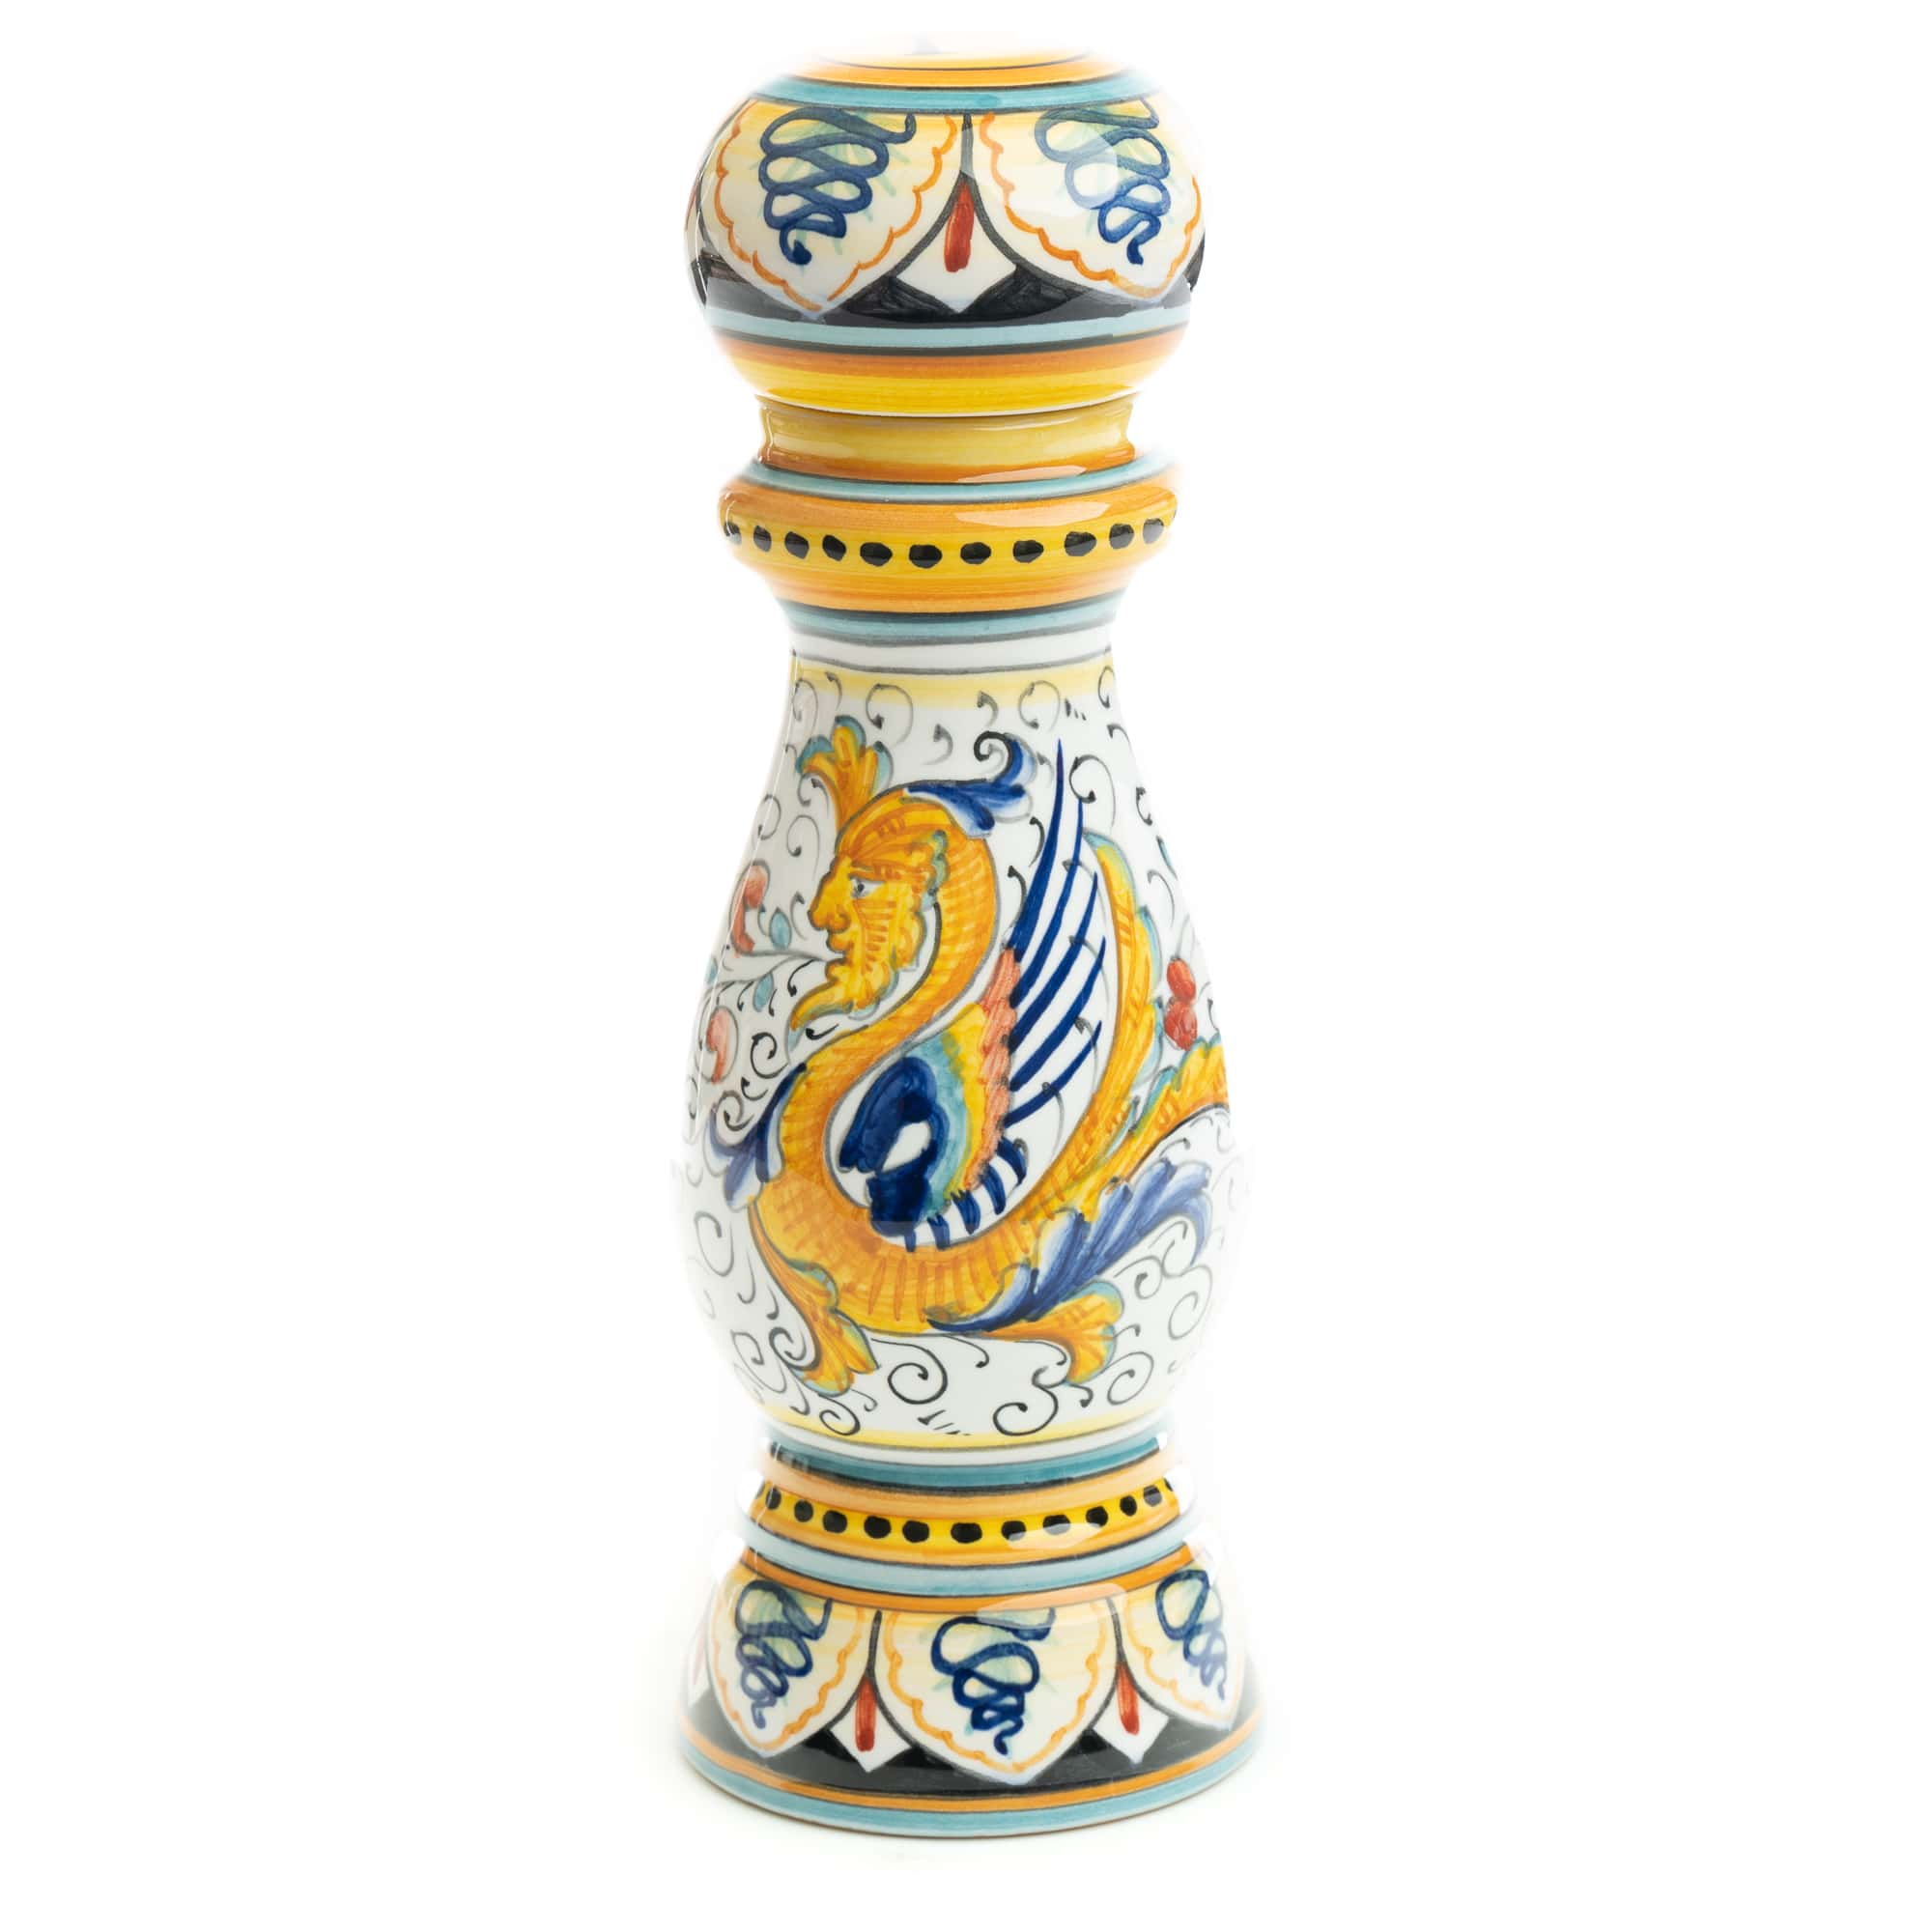 Tomassini Raffaellesco pepper grinder